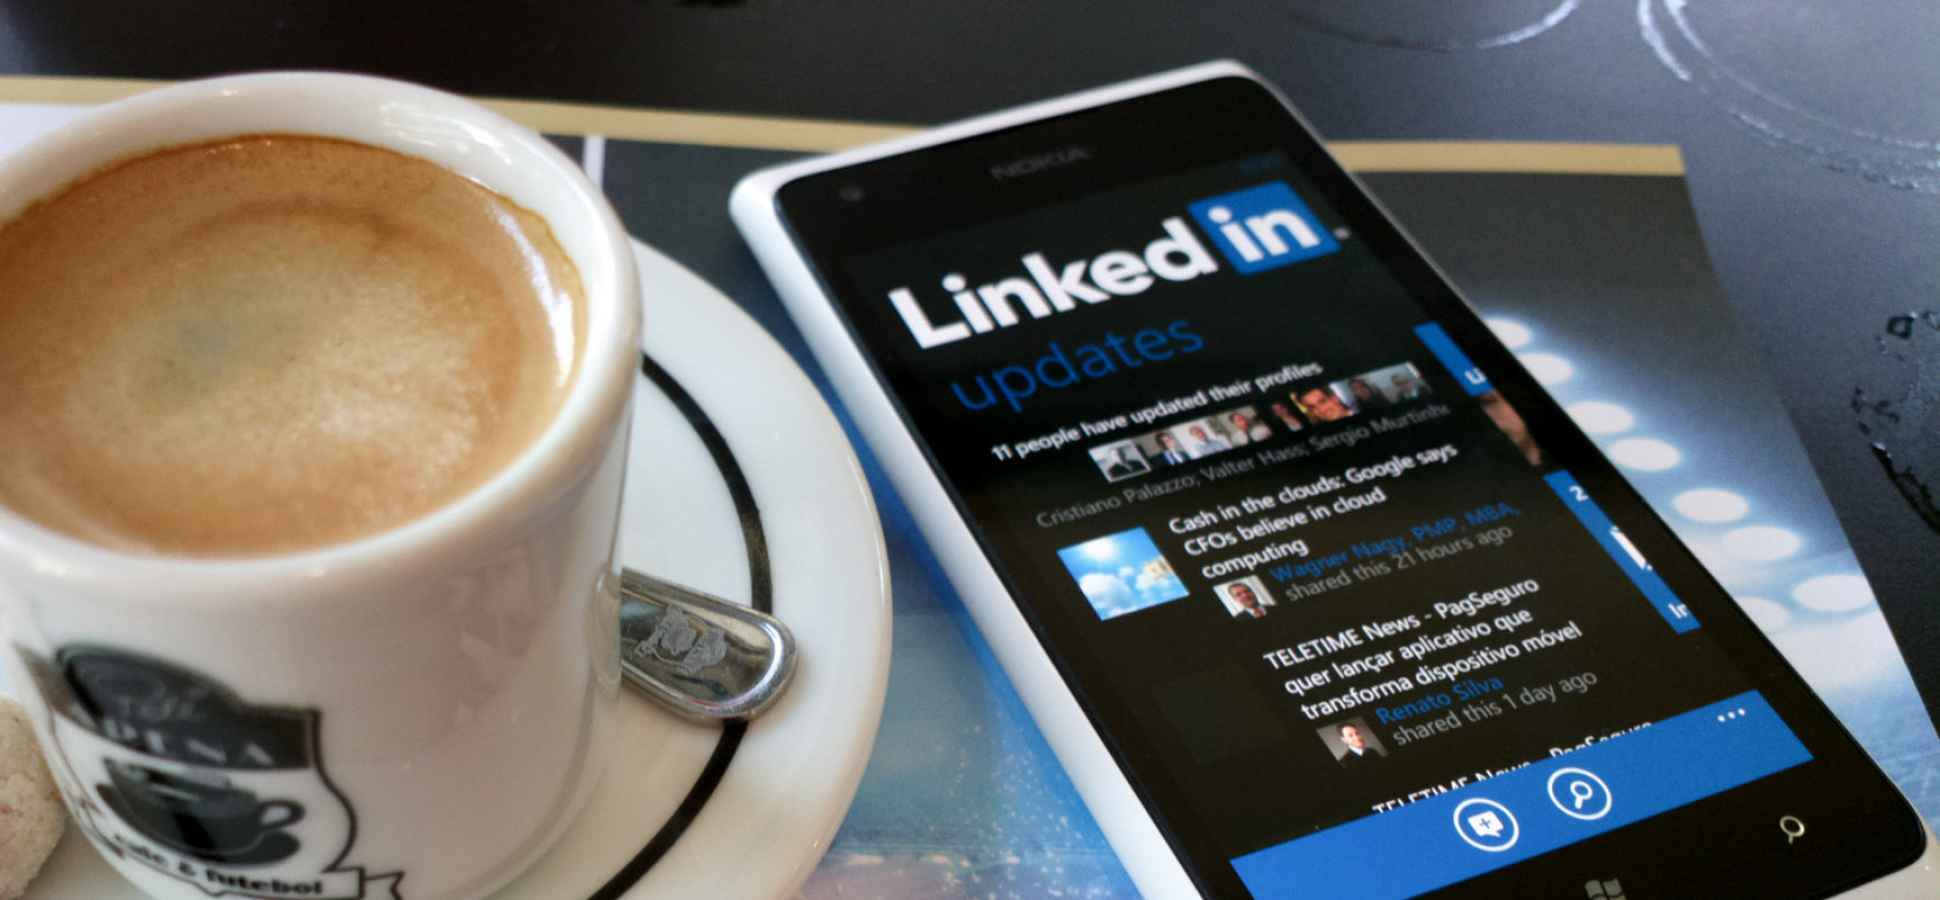 A Fresh Look at LinkedIn for Businesses - 6 Things to Do Now